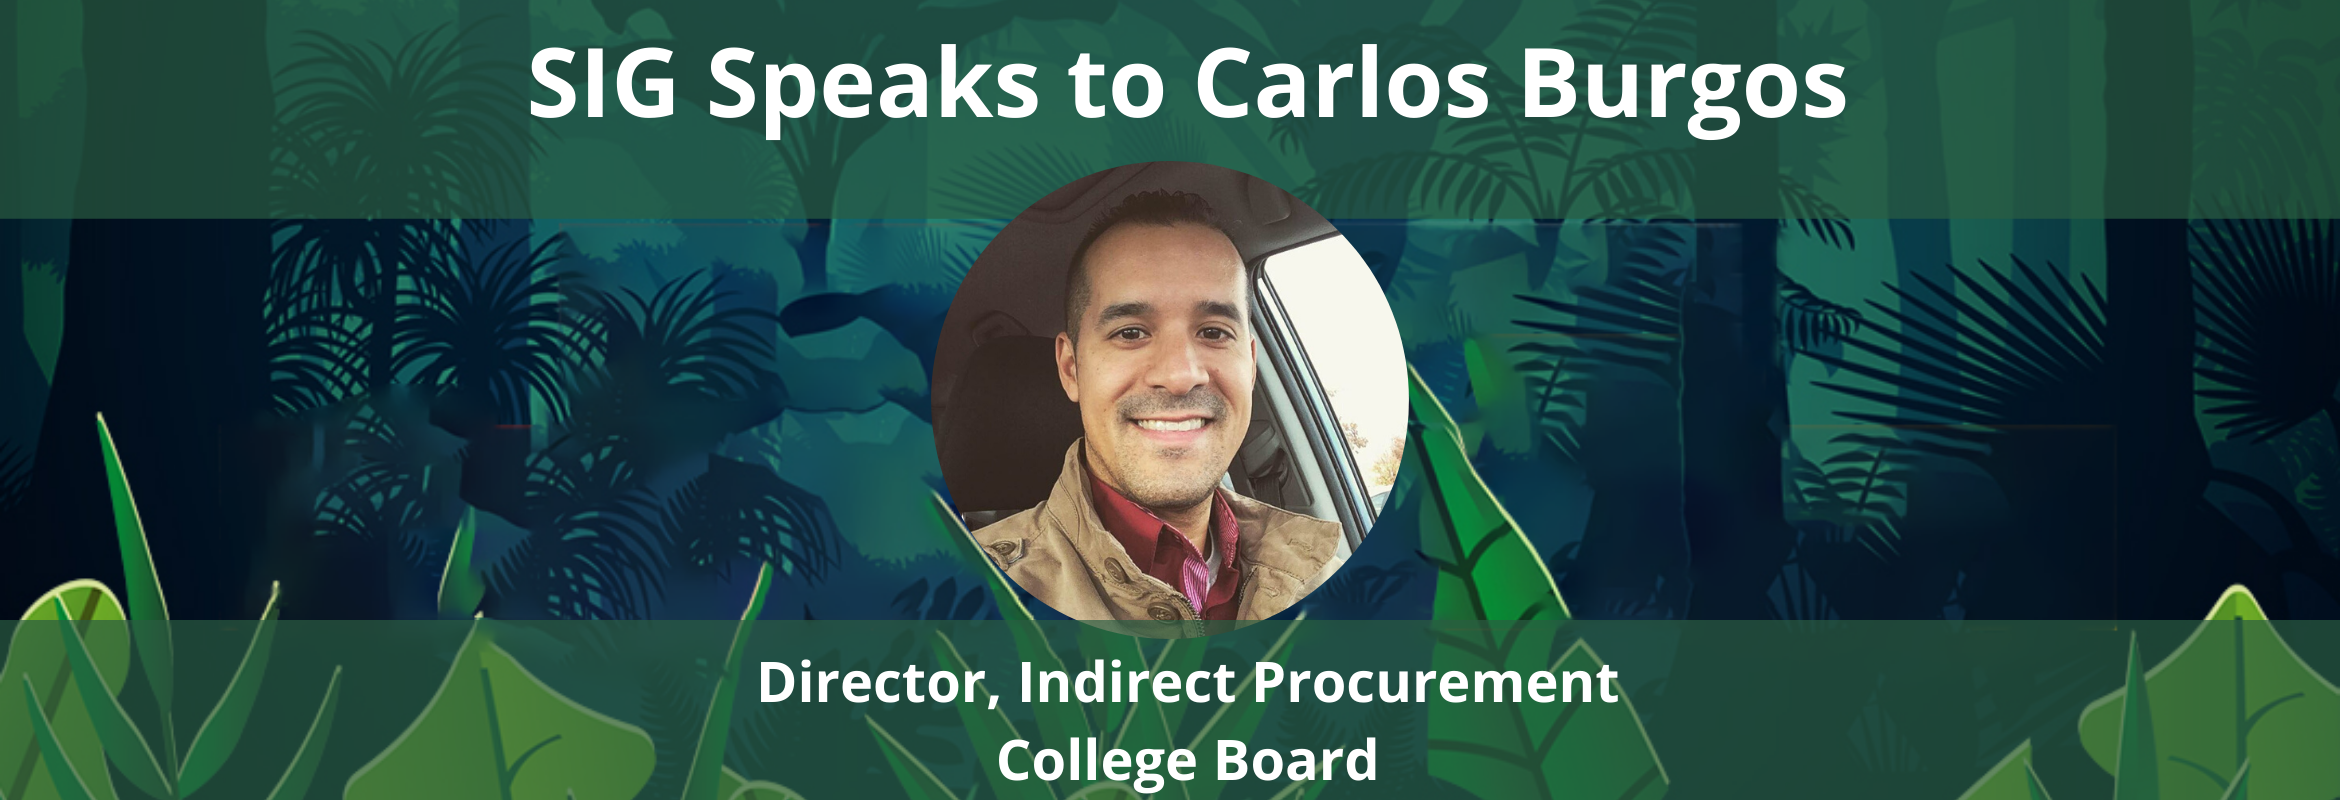 Carlos Burgos will present at the SIG Procurement Technology Summit